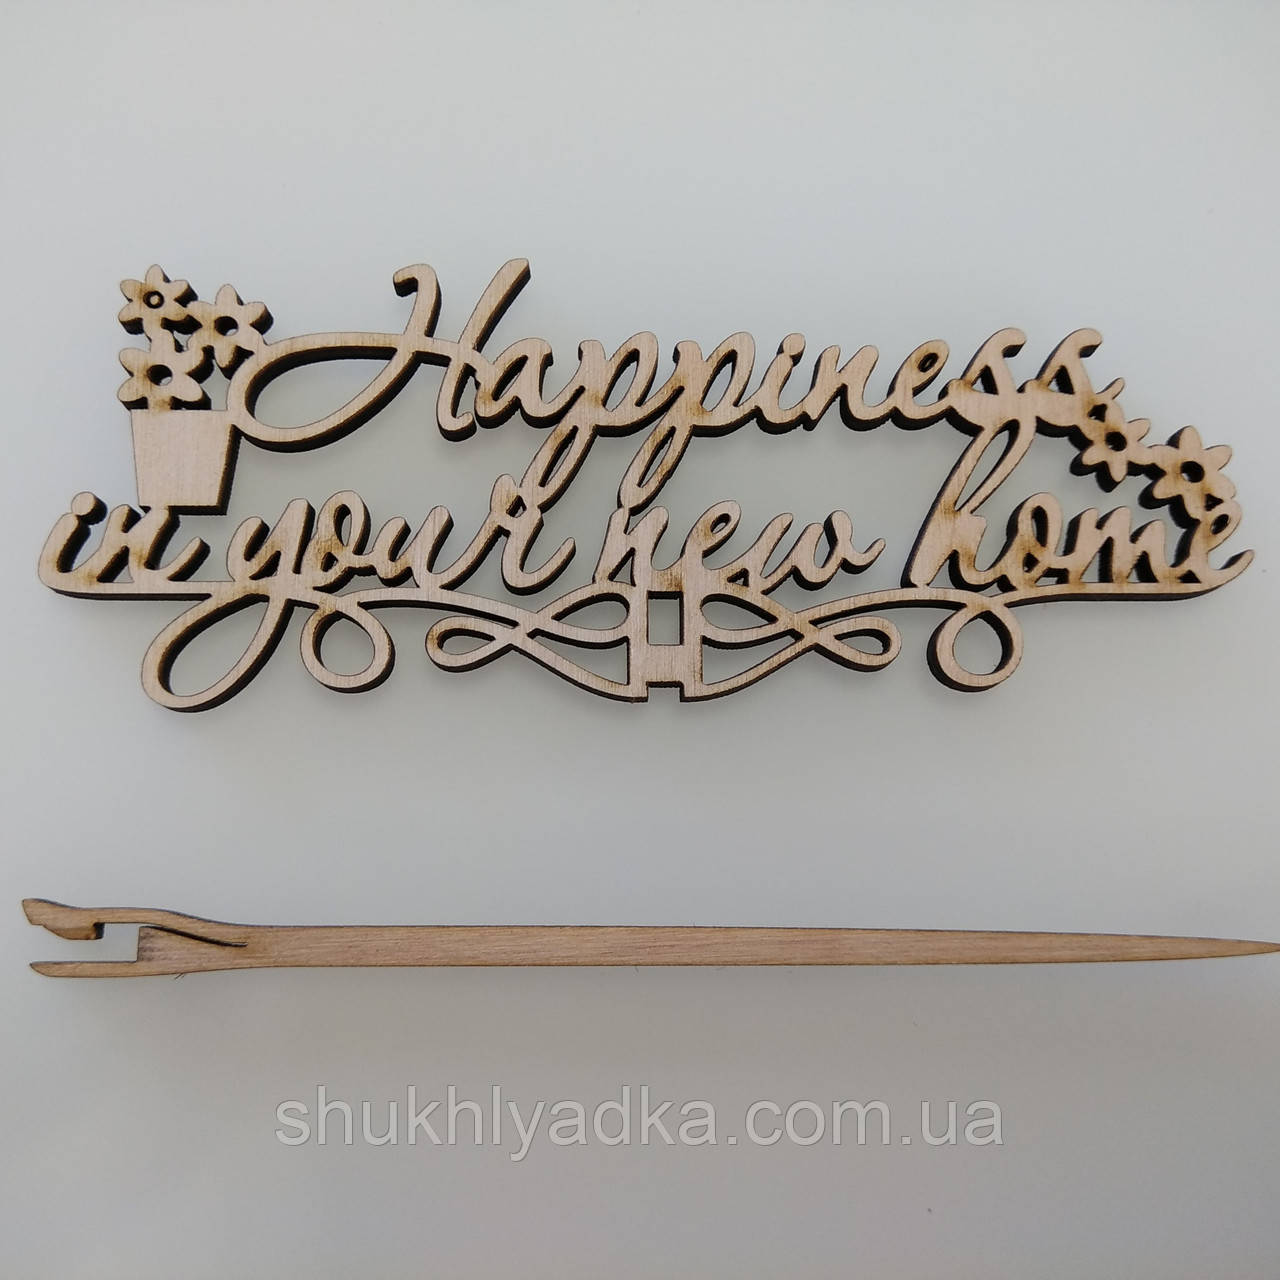 Happiness in your new home_вазон